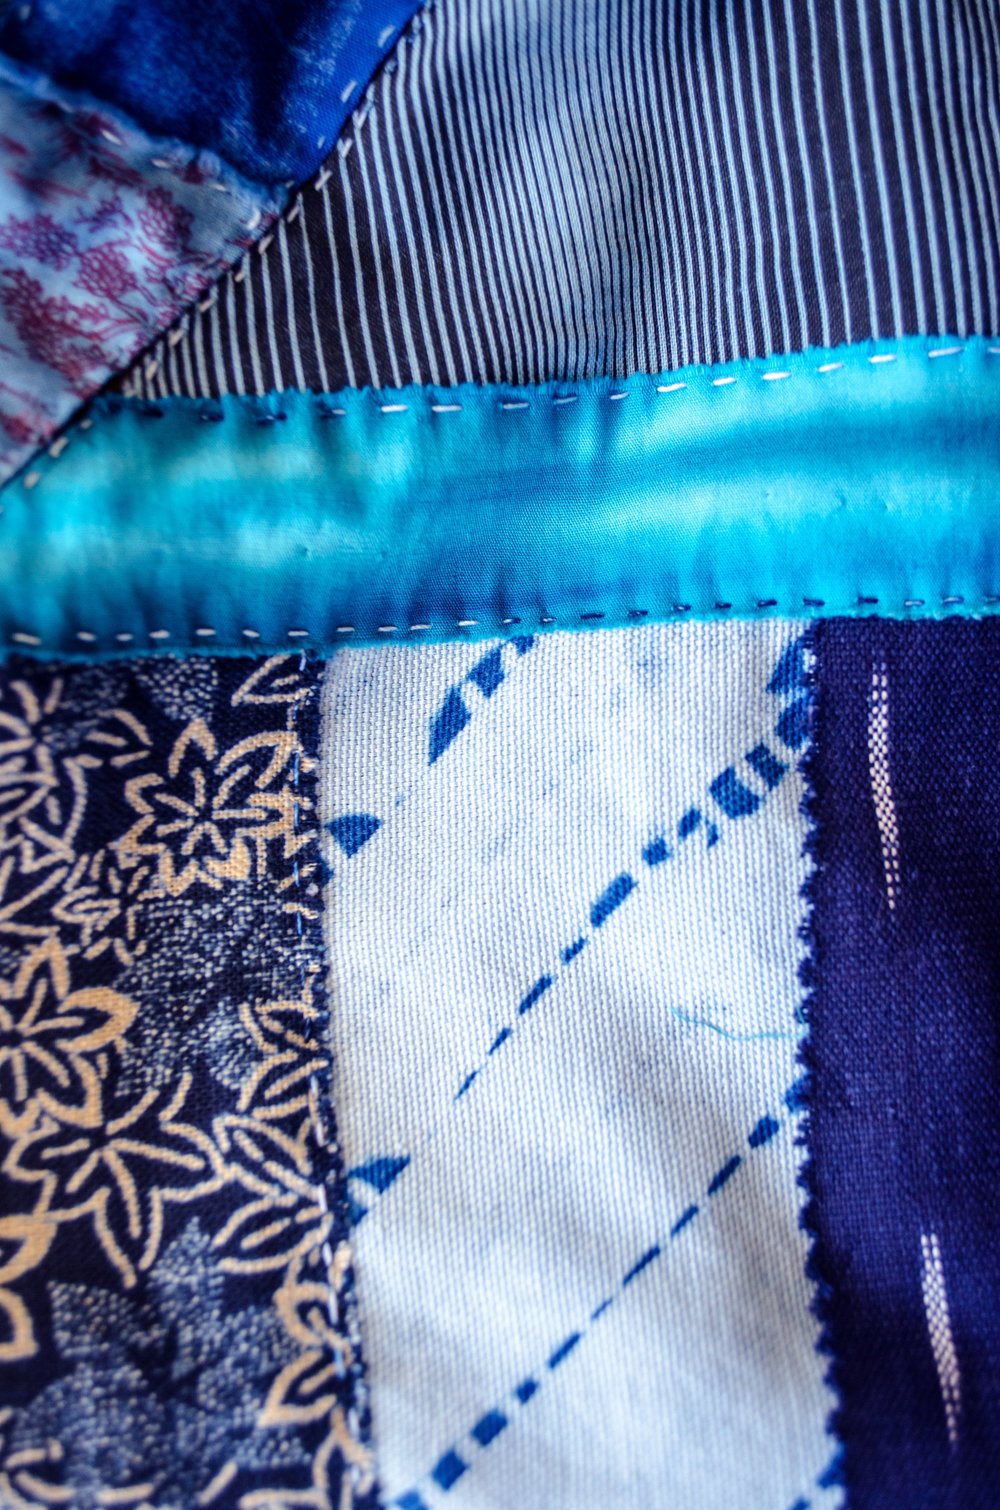 Cotton, folded, tied and dipped in the indigo vat before handstitching